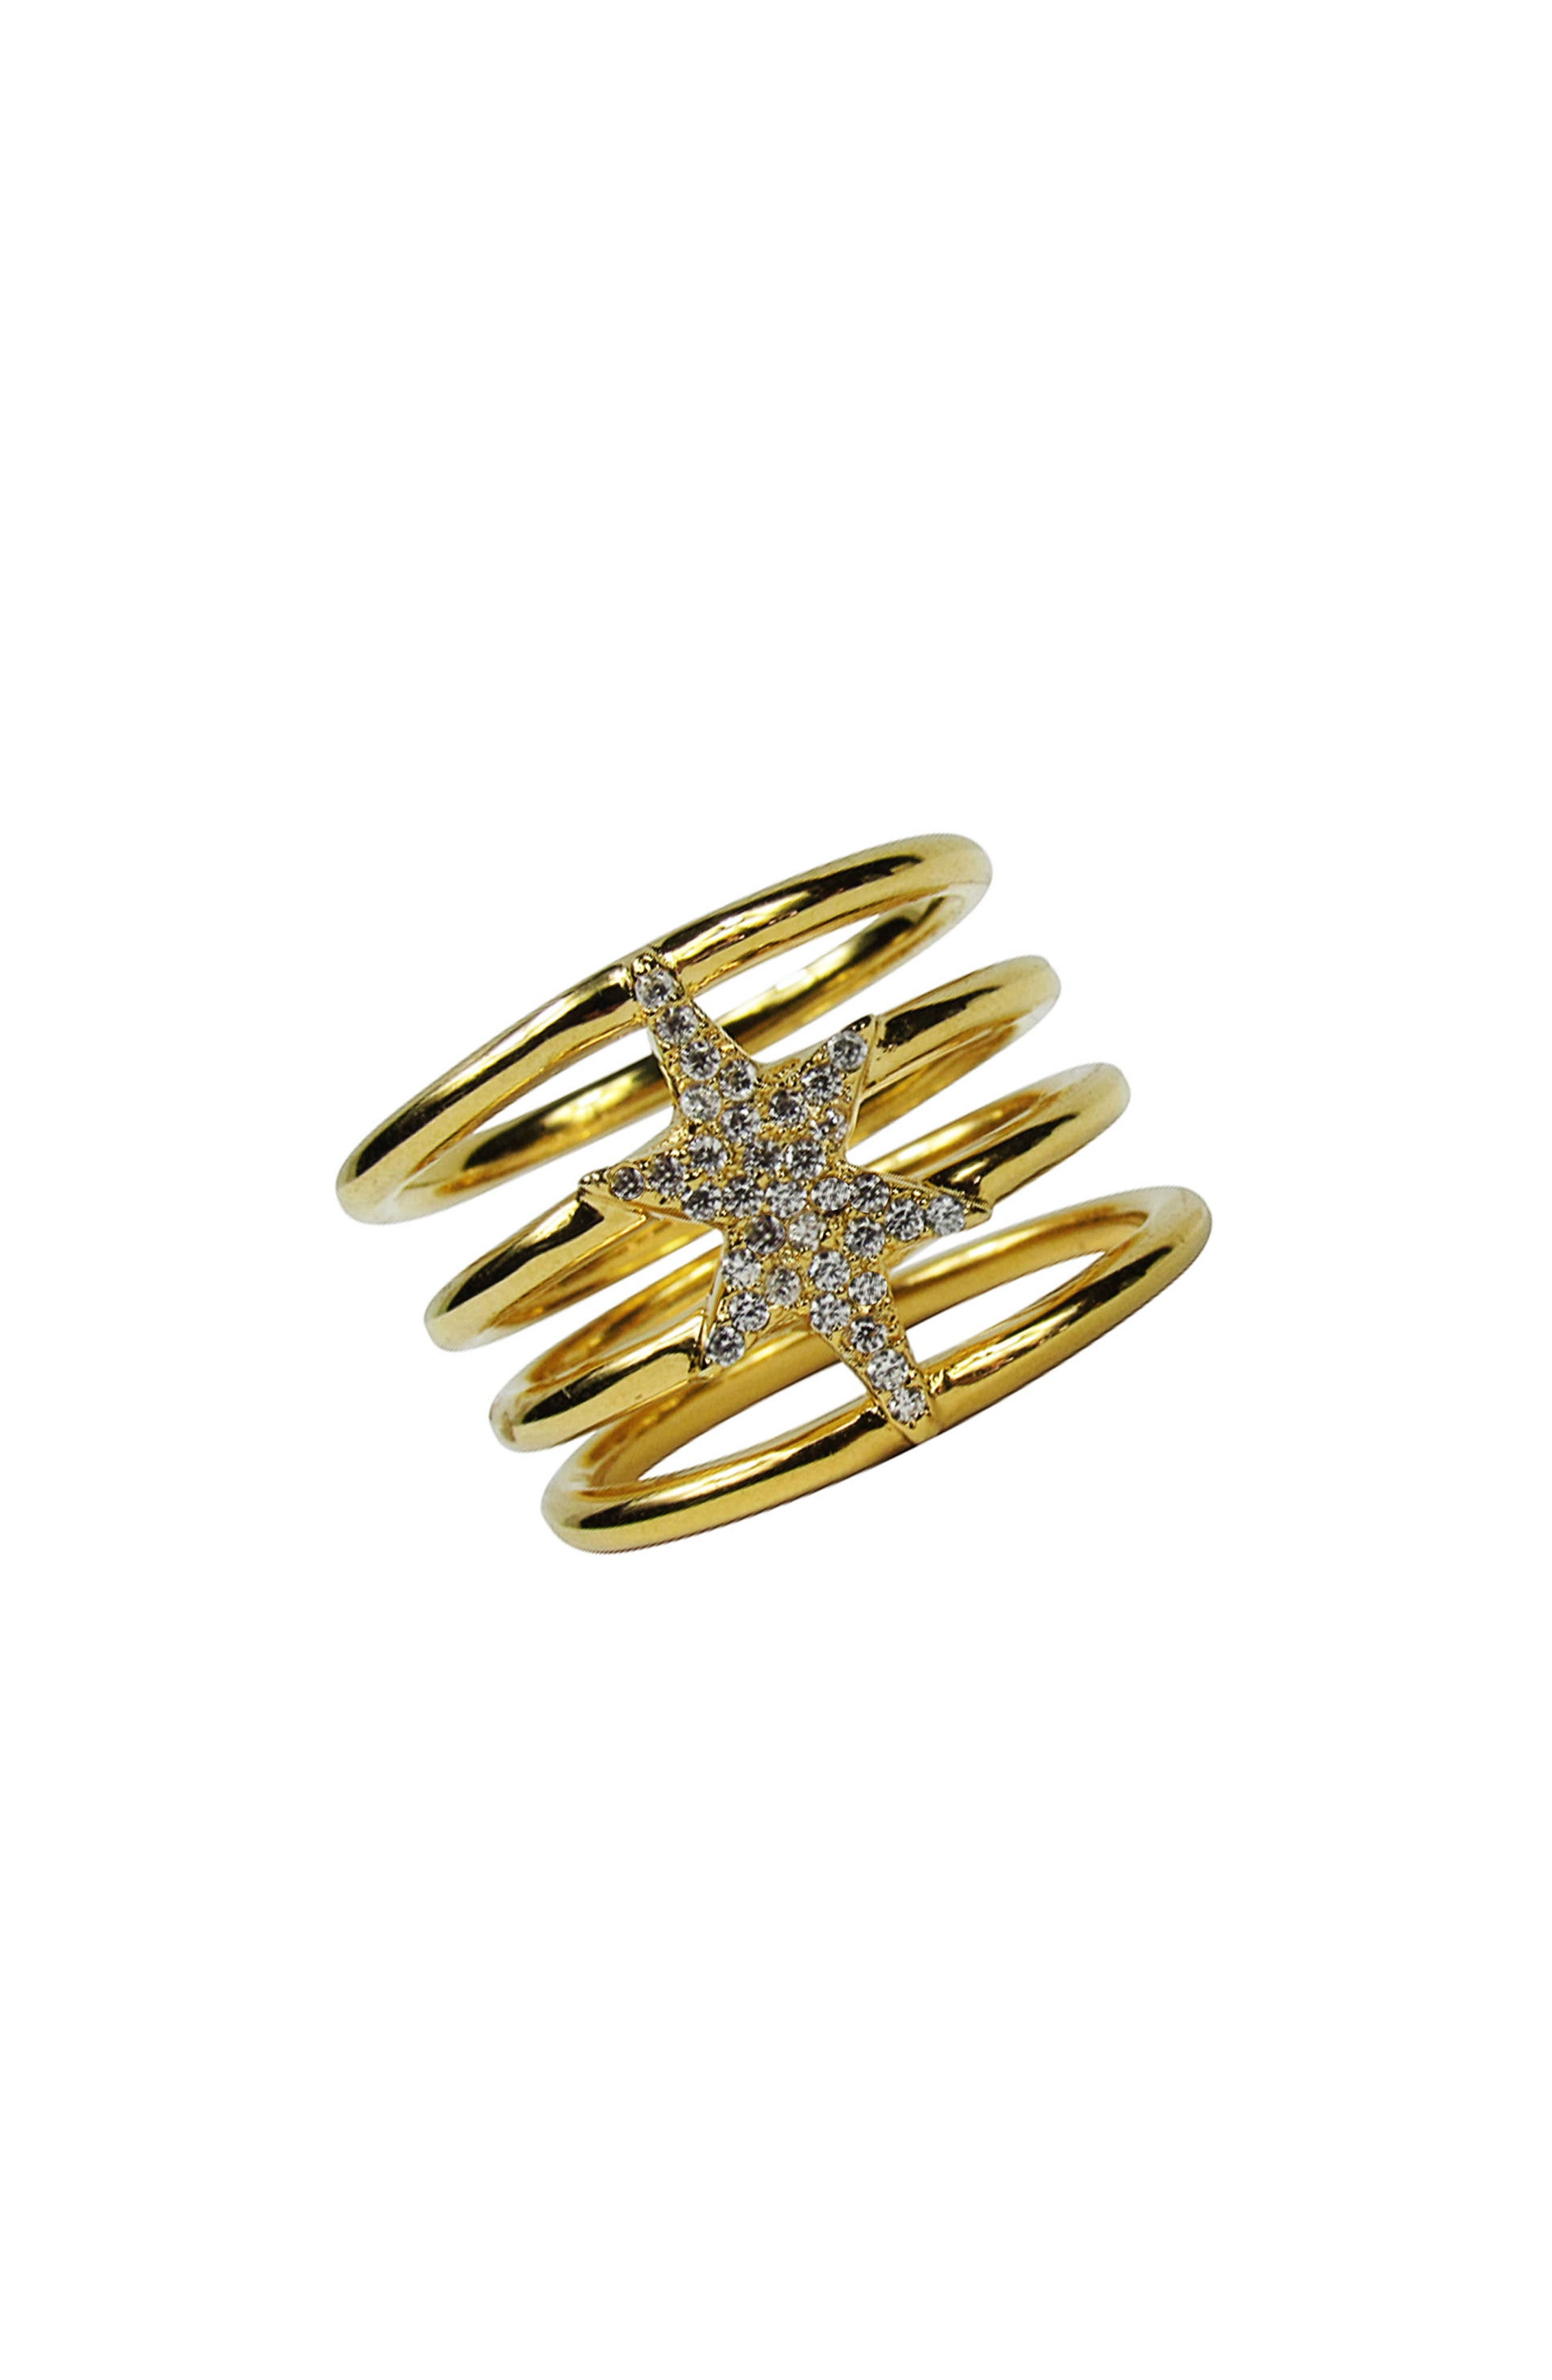 Alternate Image 1 Selected - Jules Smith North Star Statement Ring